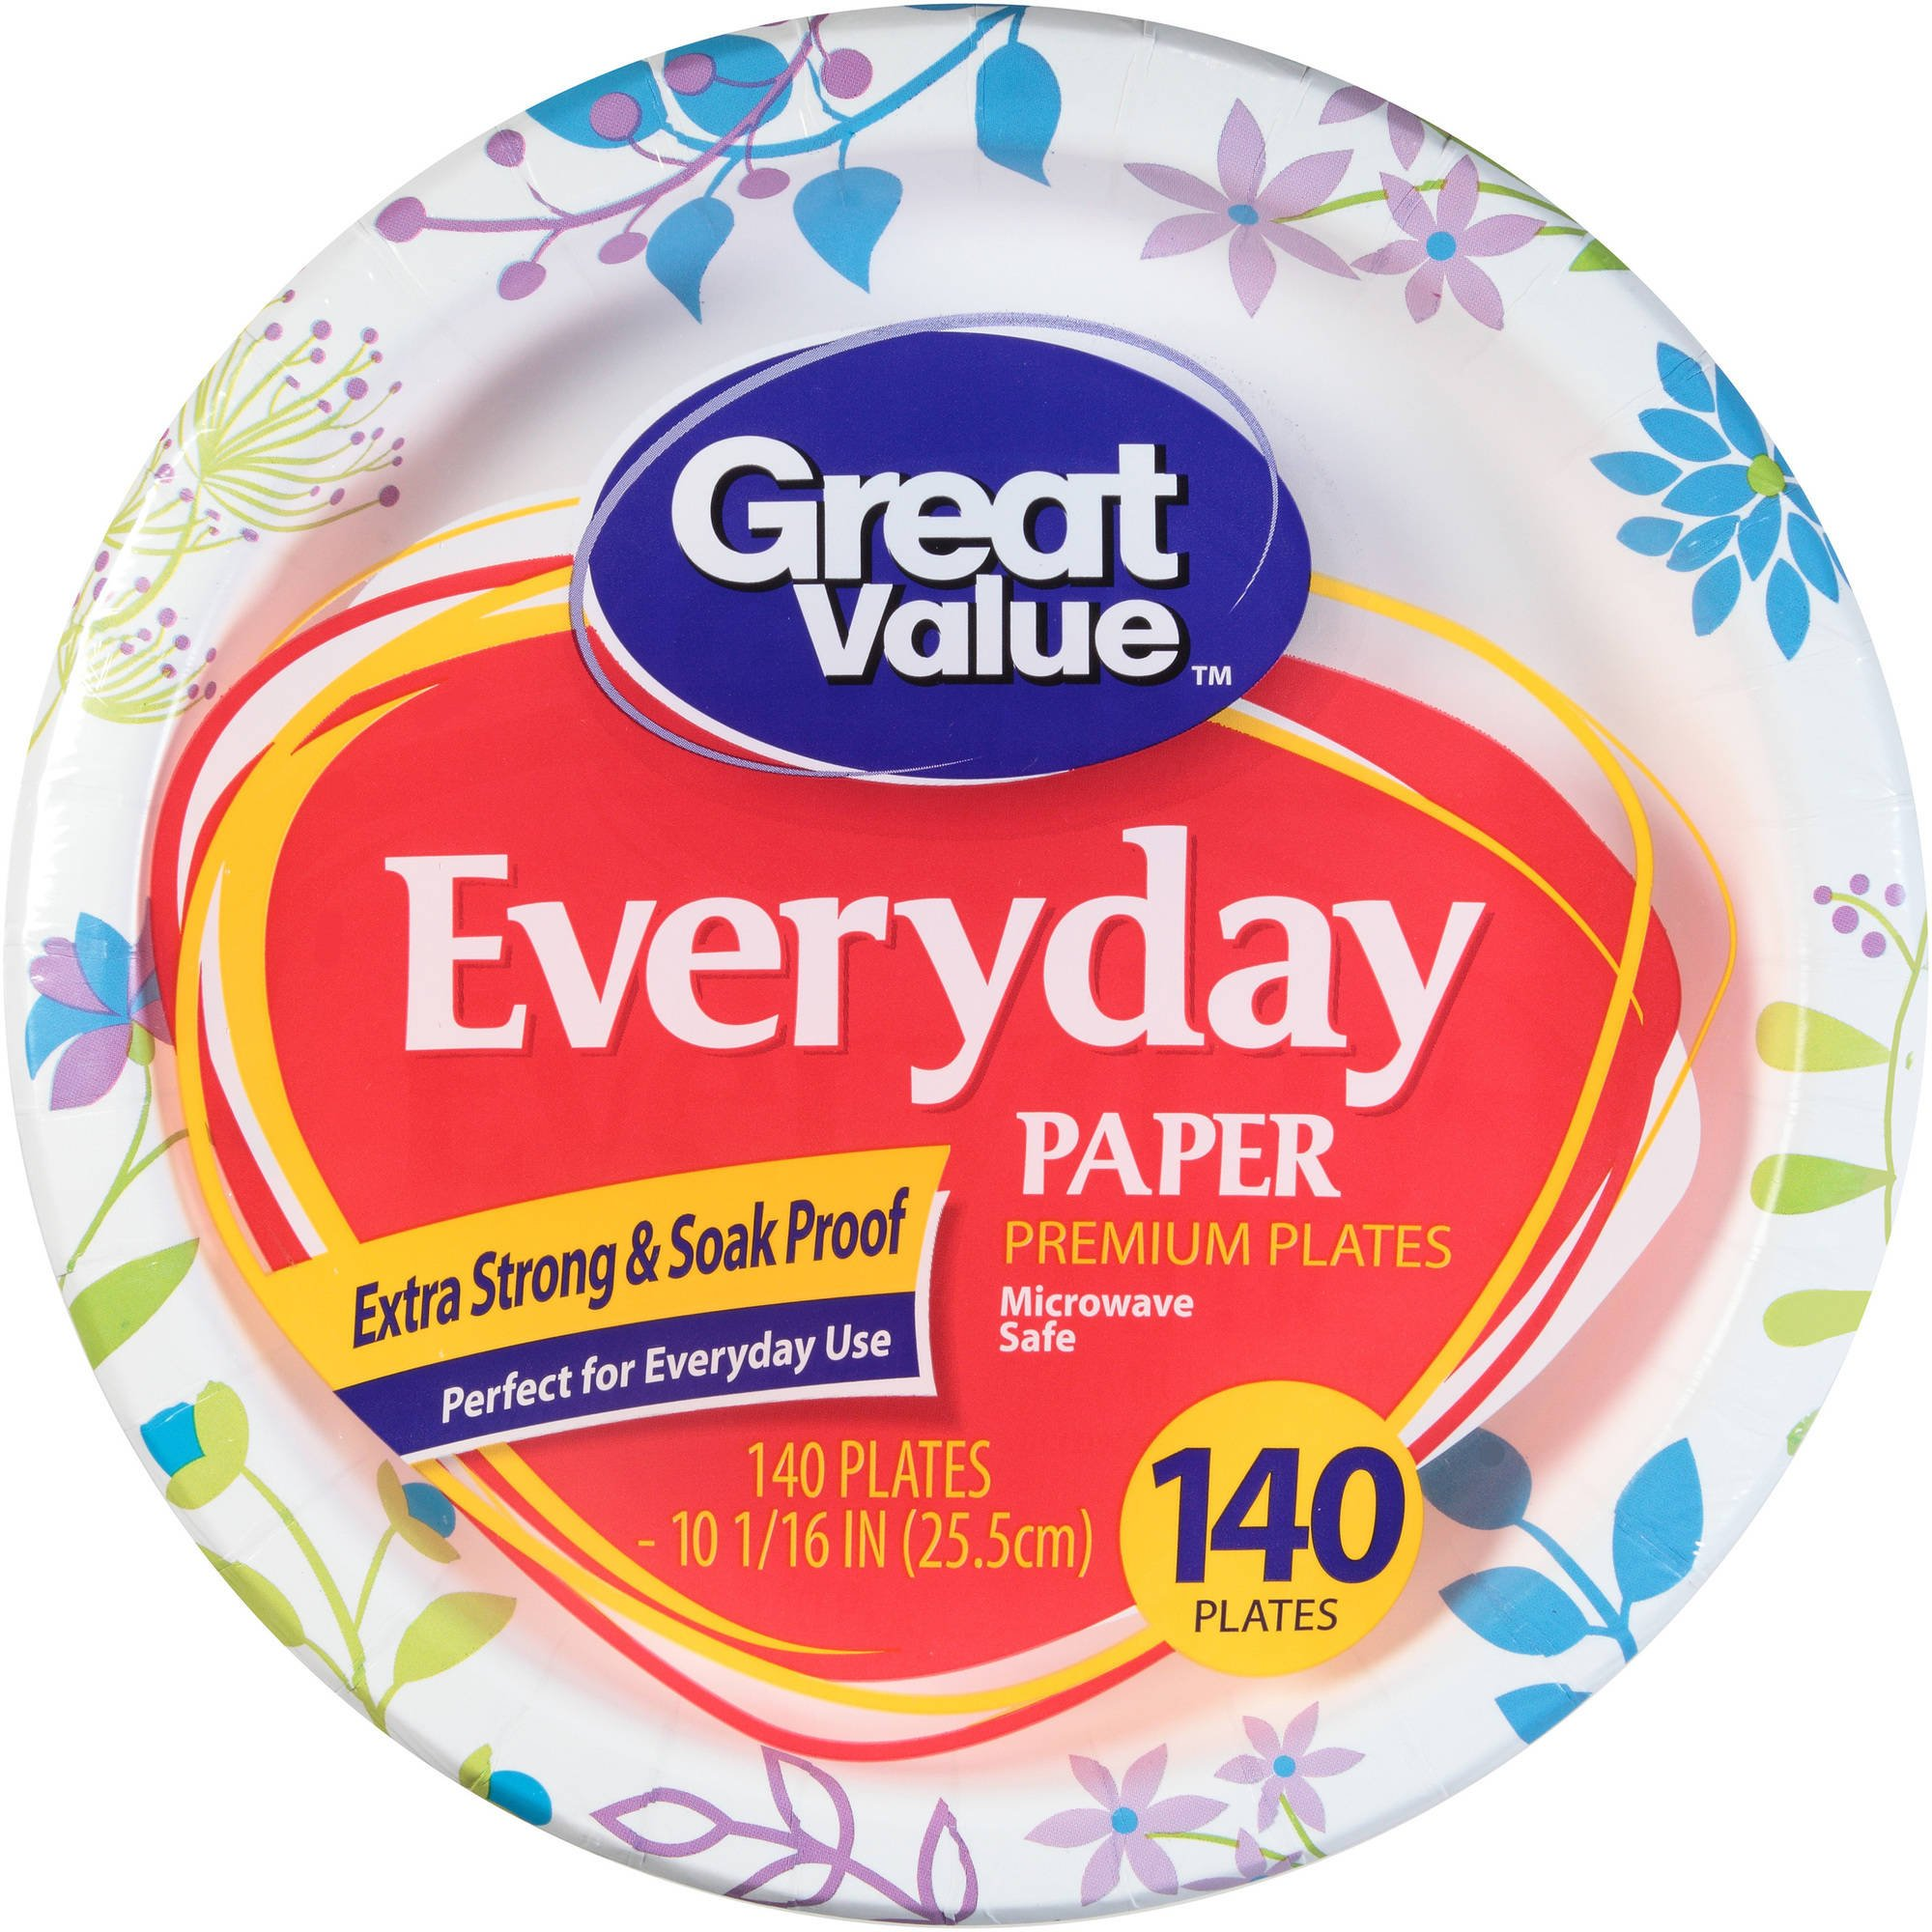 Great Value Everyday Premium Paper Plates 10 1/16'' 140 Count by Great Value